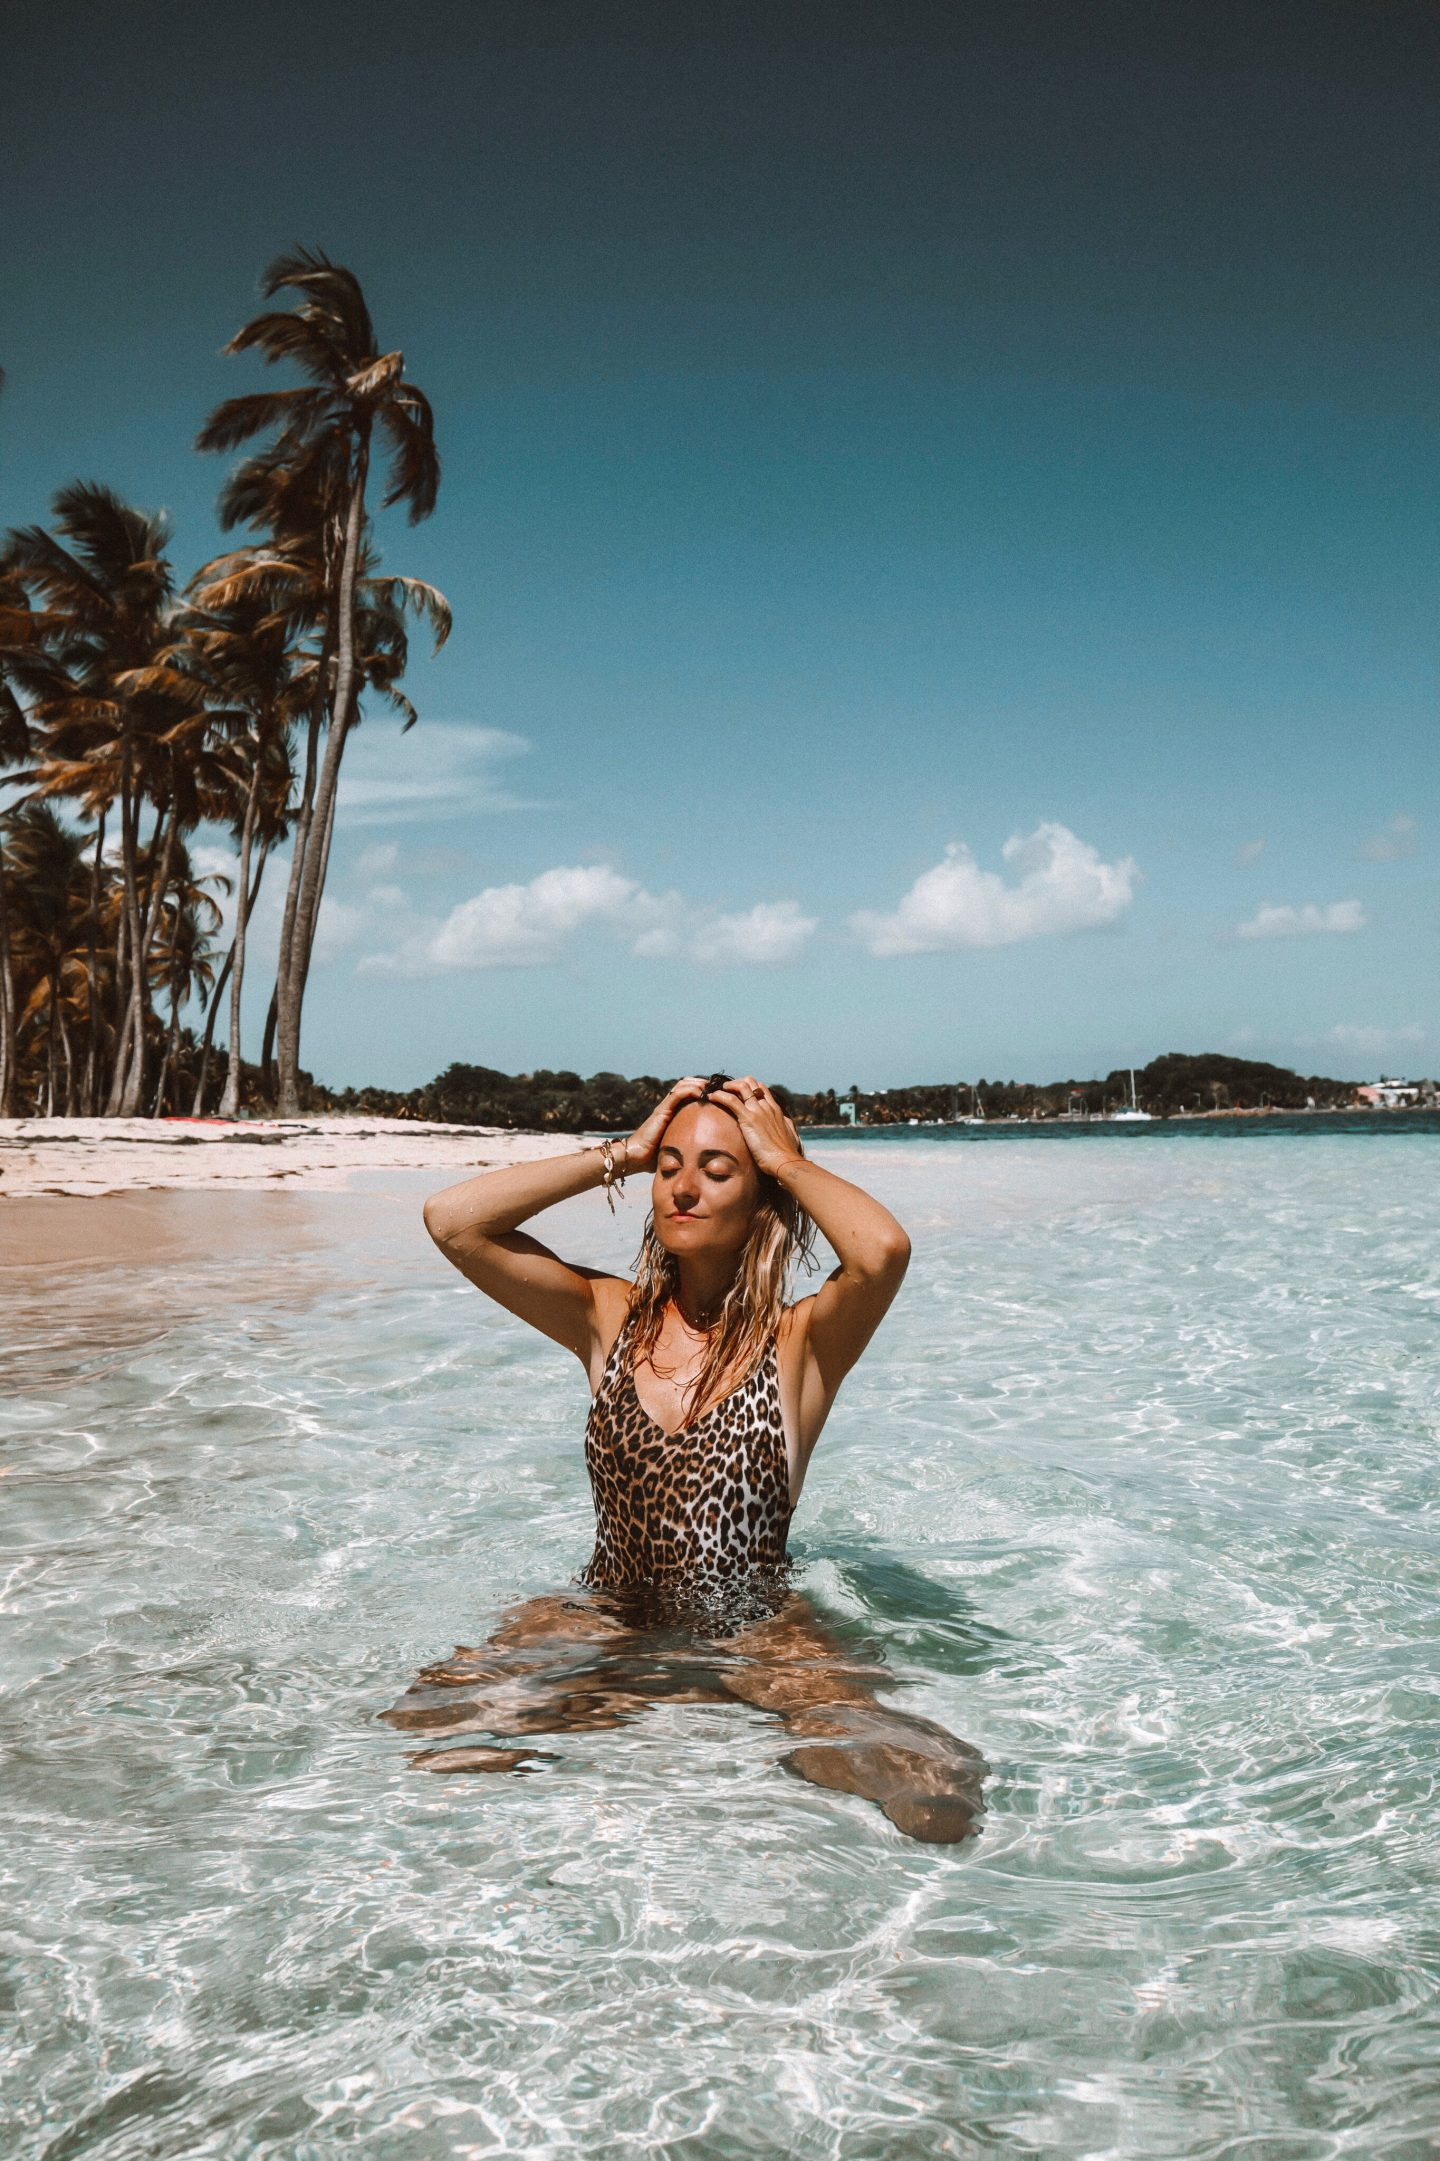 Belles plages Guadeloupe - Blondie Baby blog voyage et mode